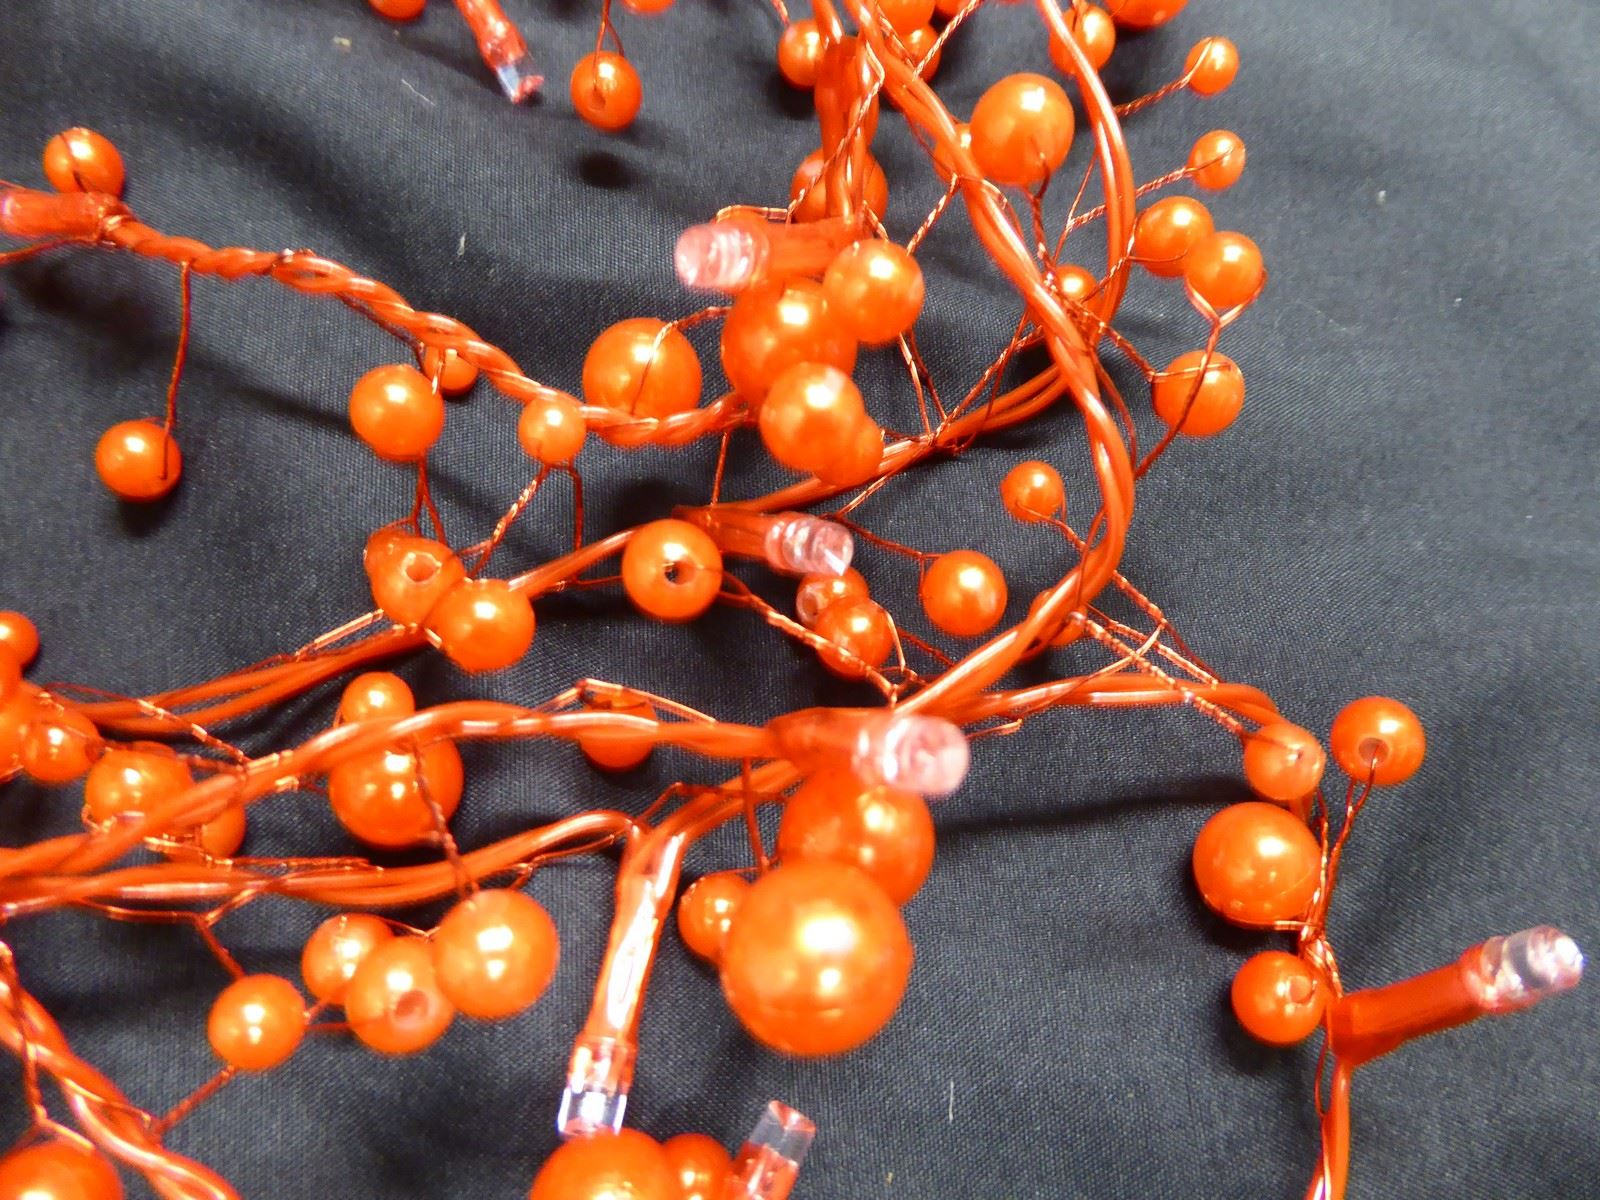 6ft-1-8m-Berry-Twig-Artificial-Christmas-Garland-With-Lights-Decoration thumbnail 10